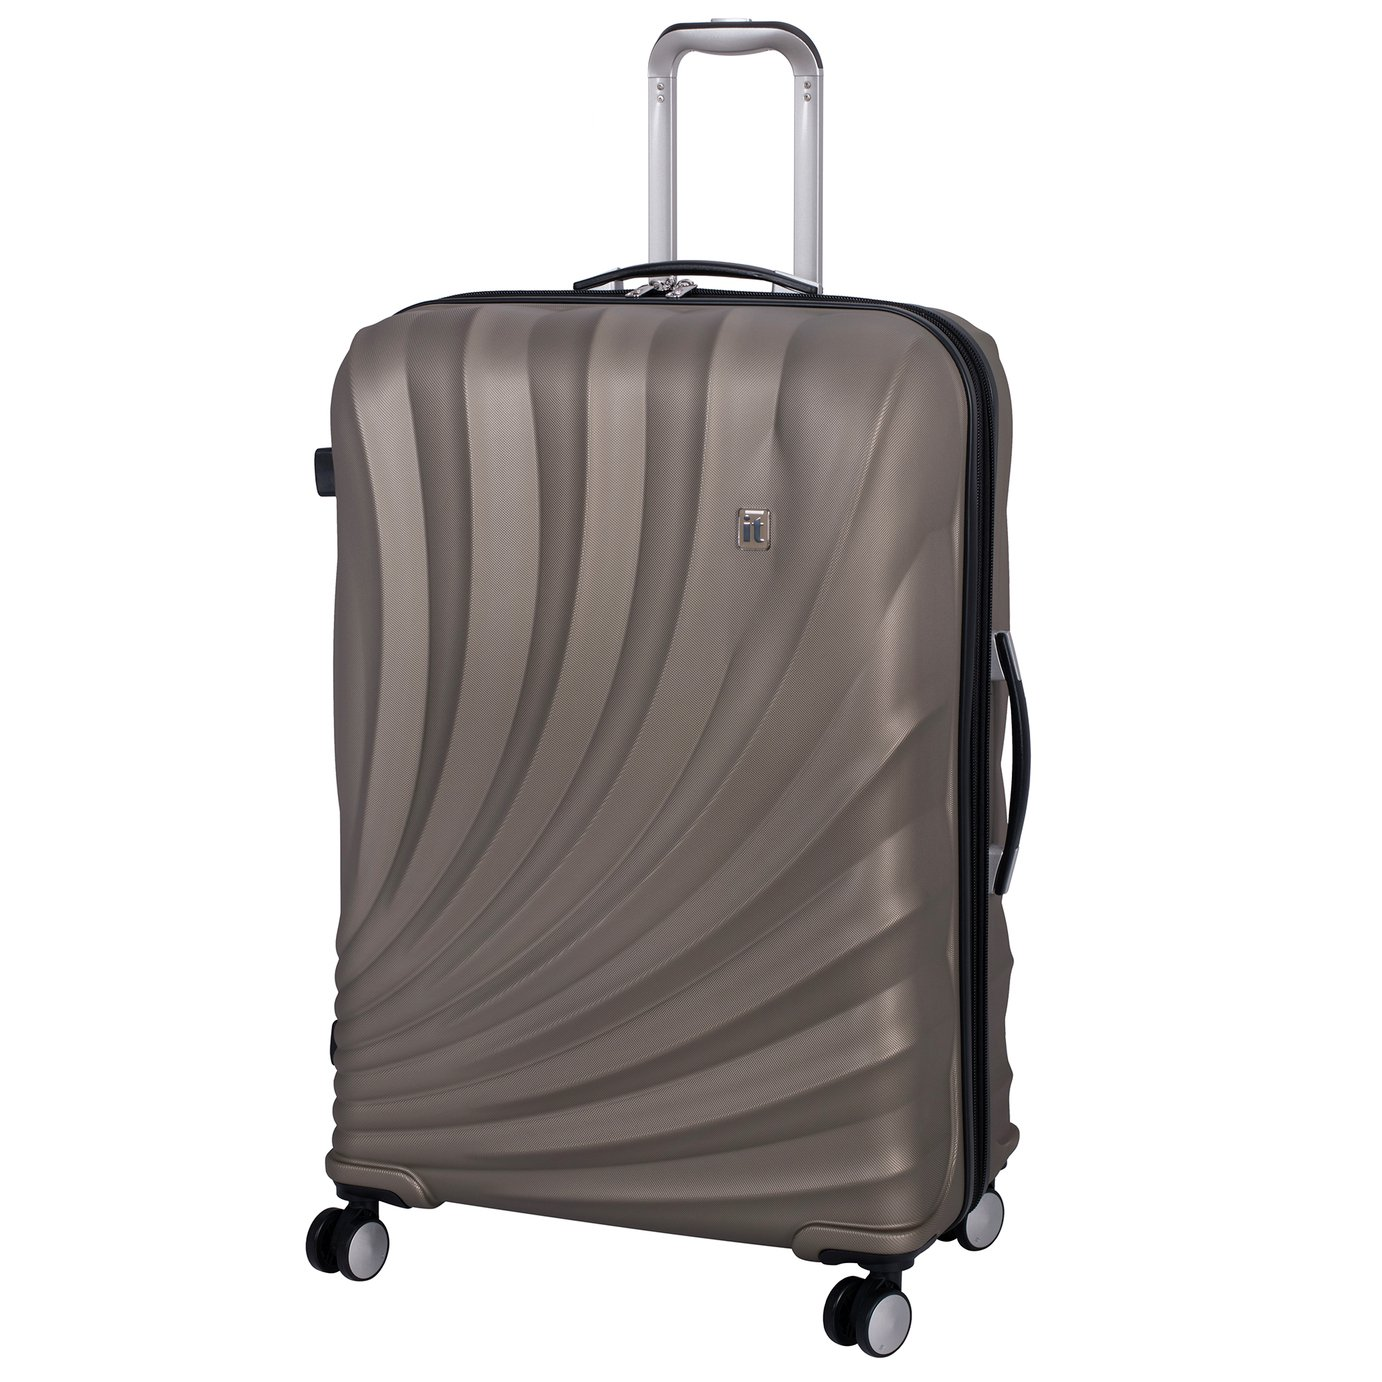 it Luggage Pagoda Large Expandable 8 Wheel Suitcase - Gold